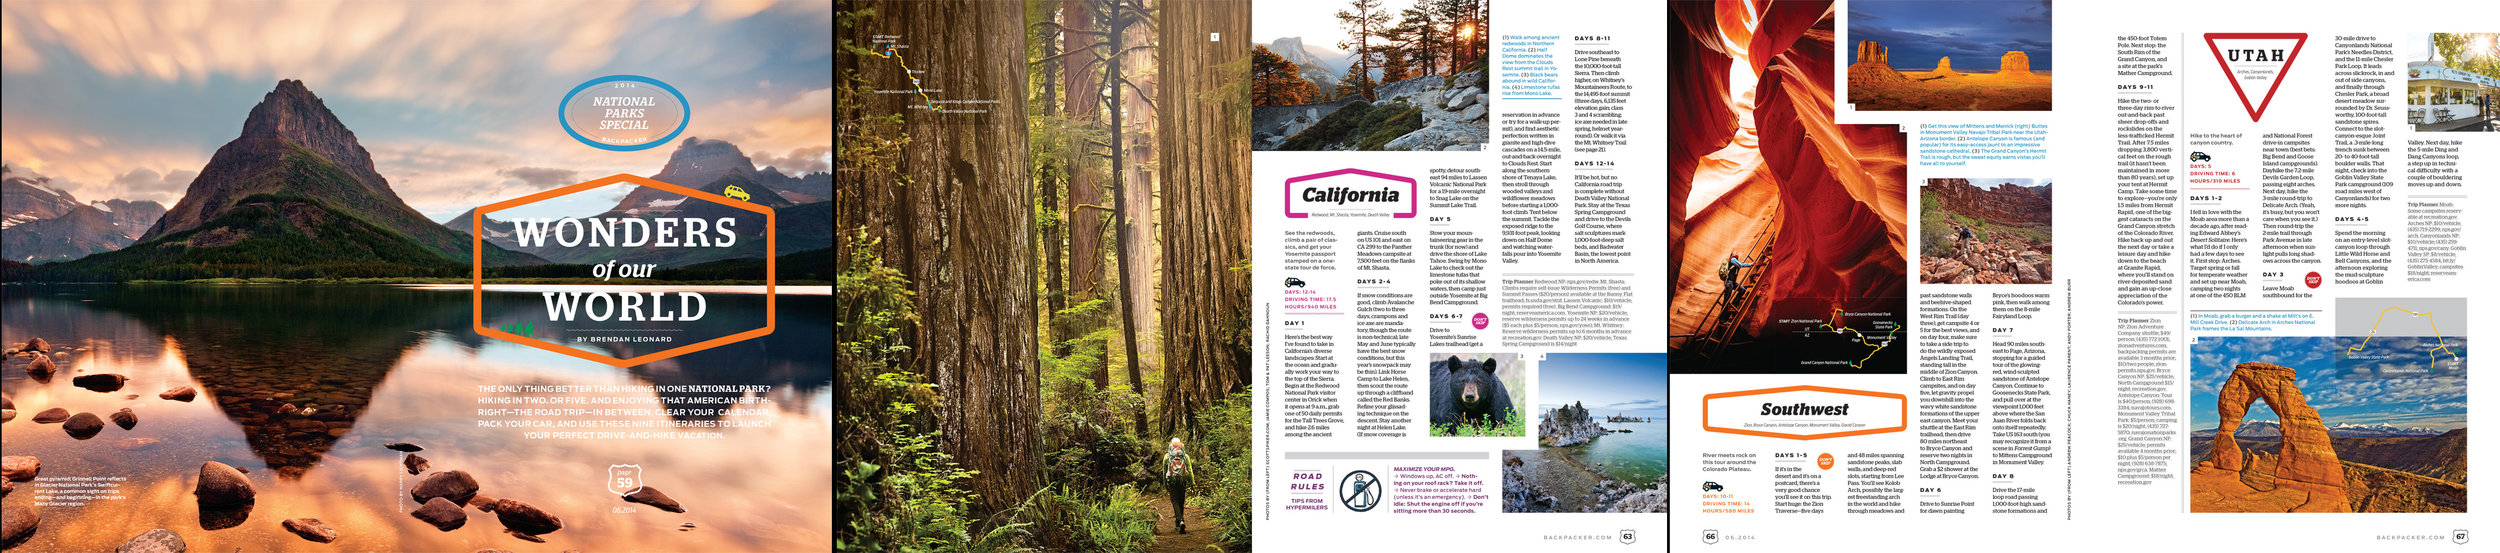 Backpacker Magazine - Feature